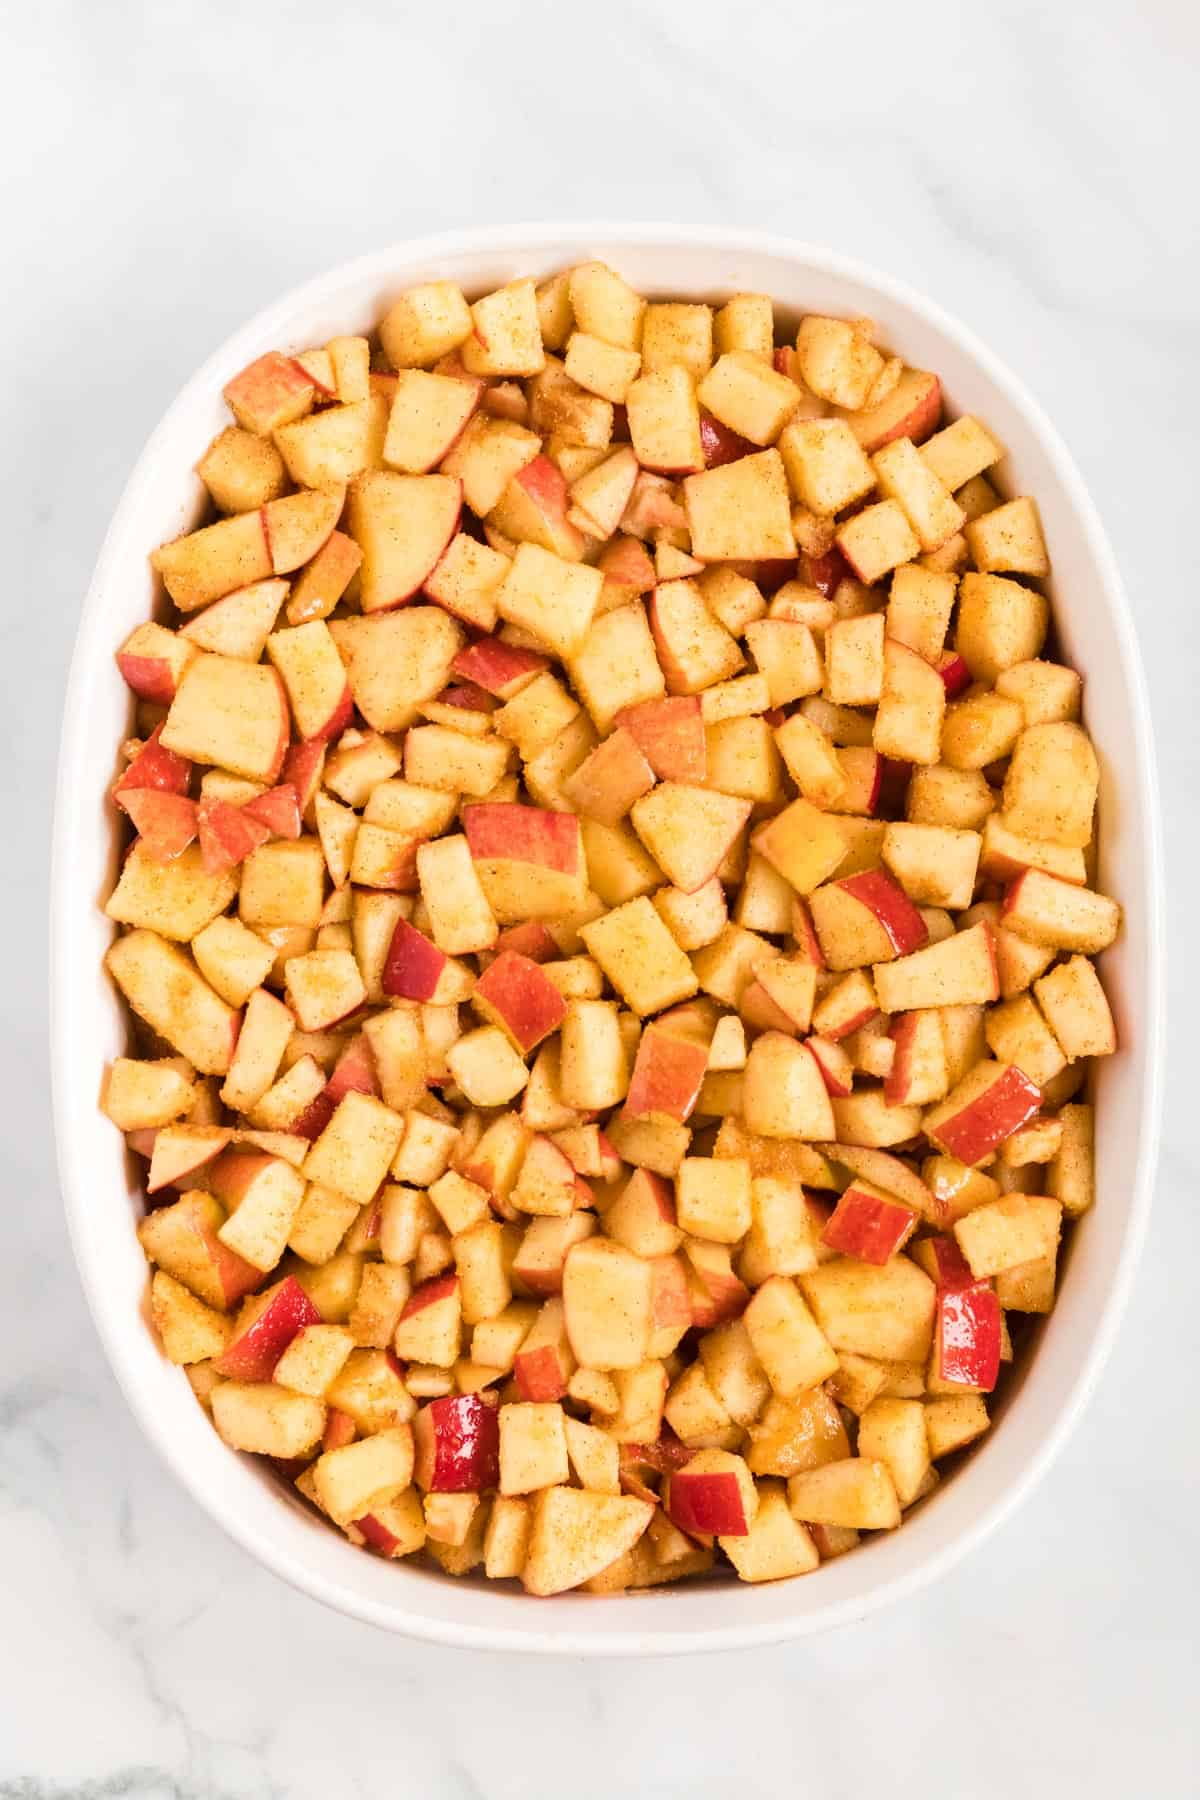 apples in a baking dish